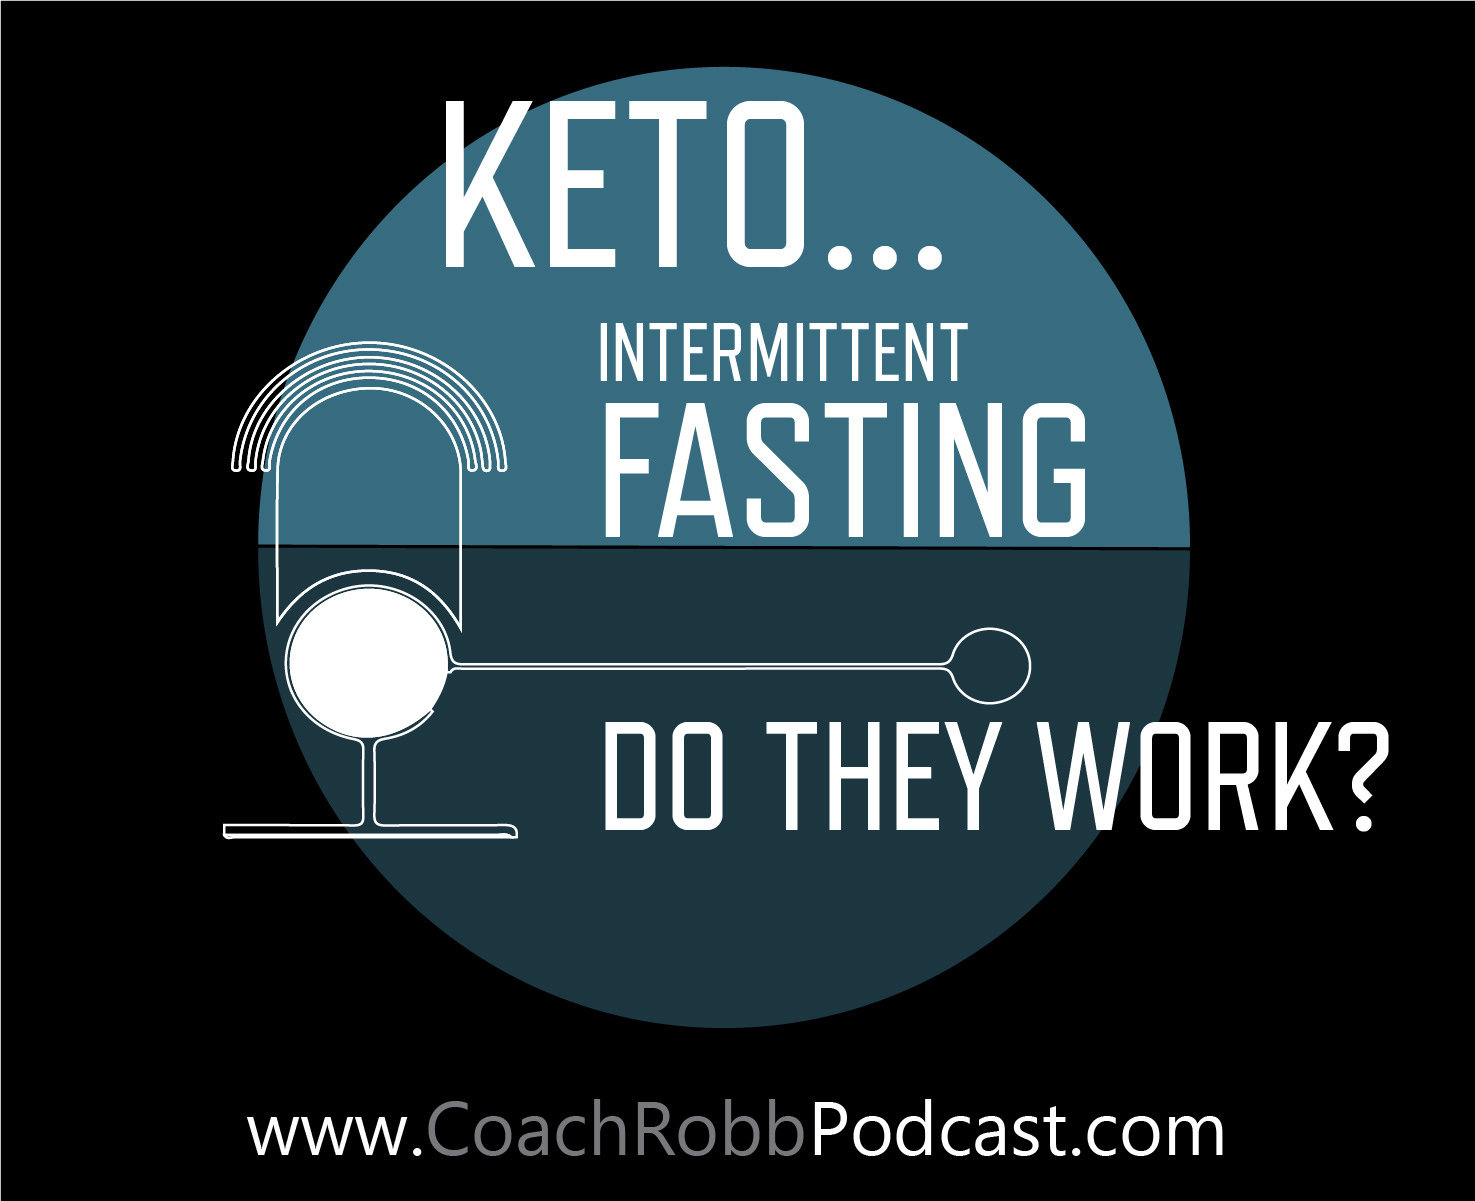 KETOGENIC DIET & INTERMITTENT FASTING: DO THEY WORK? - PODCAST #23